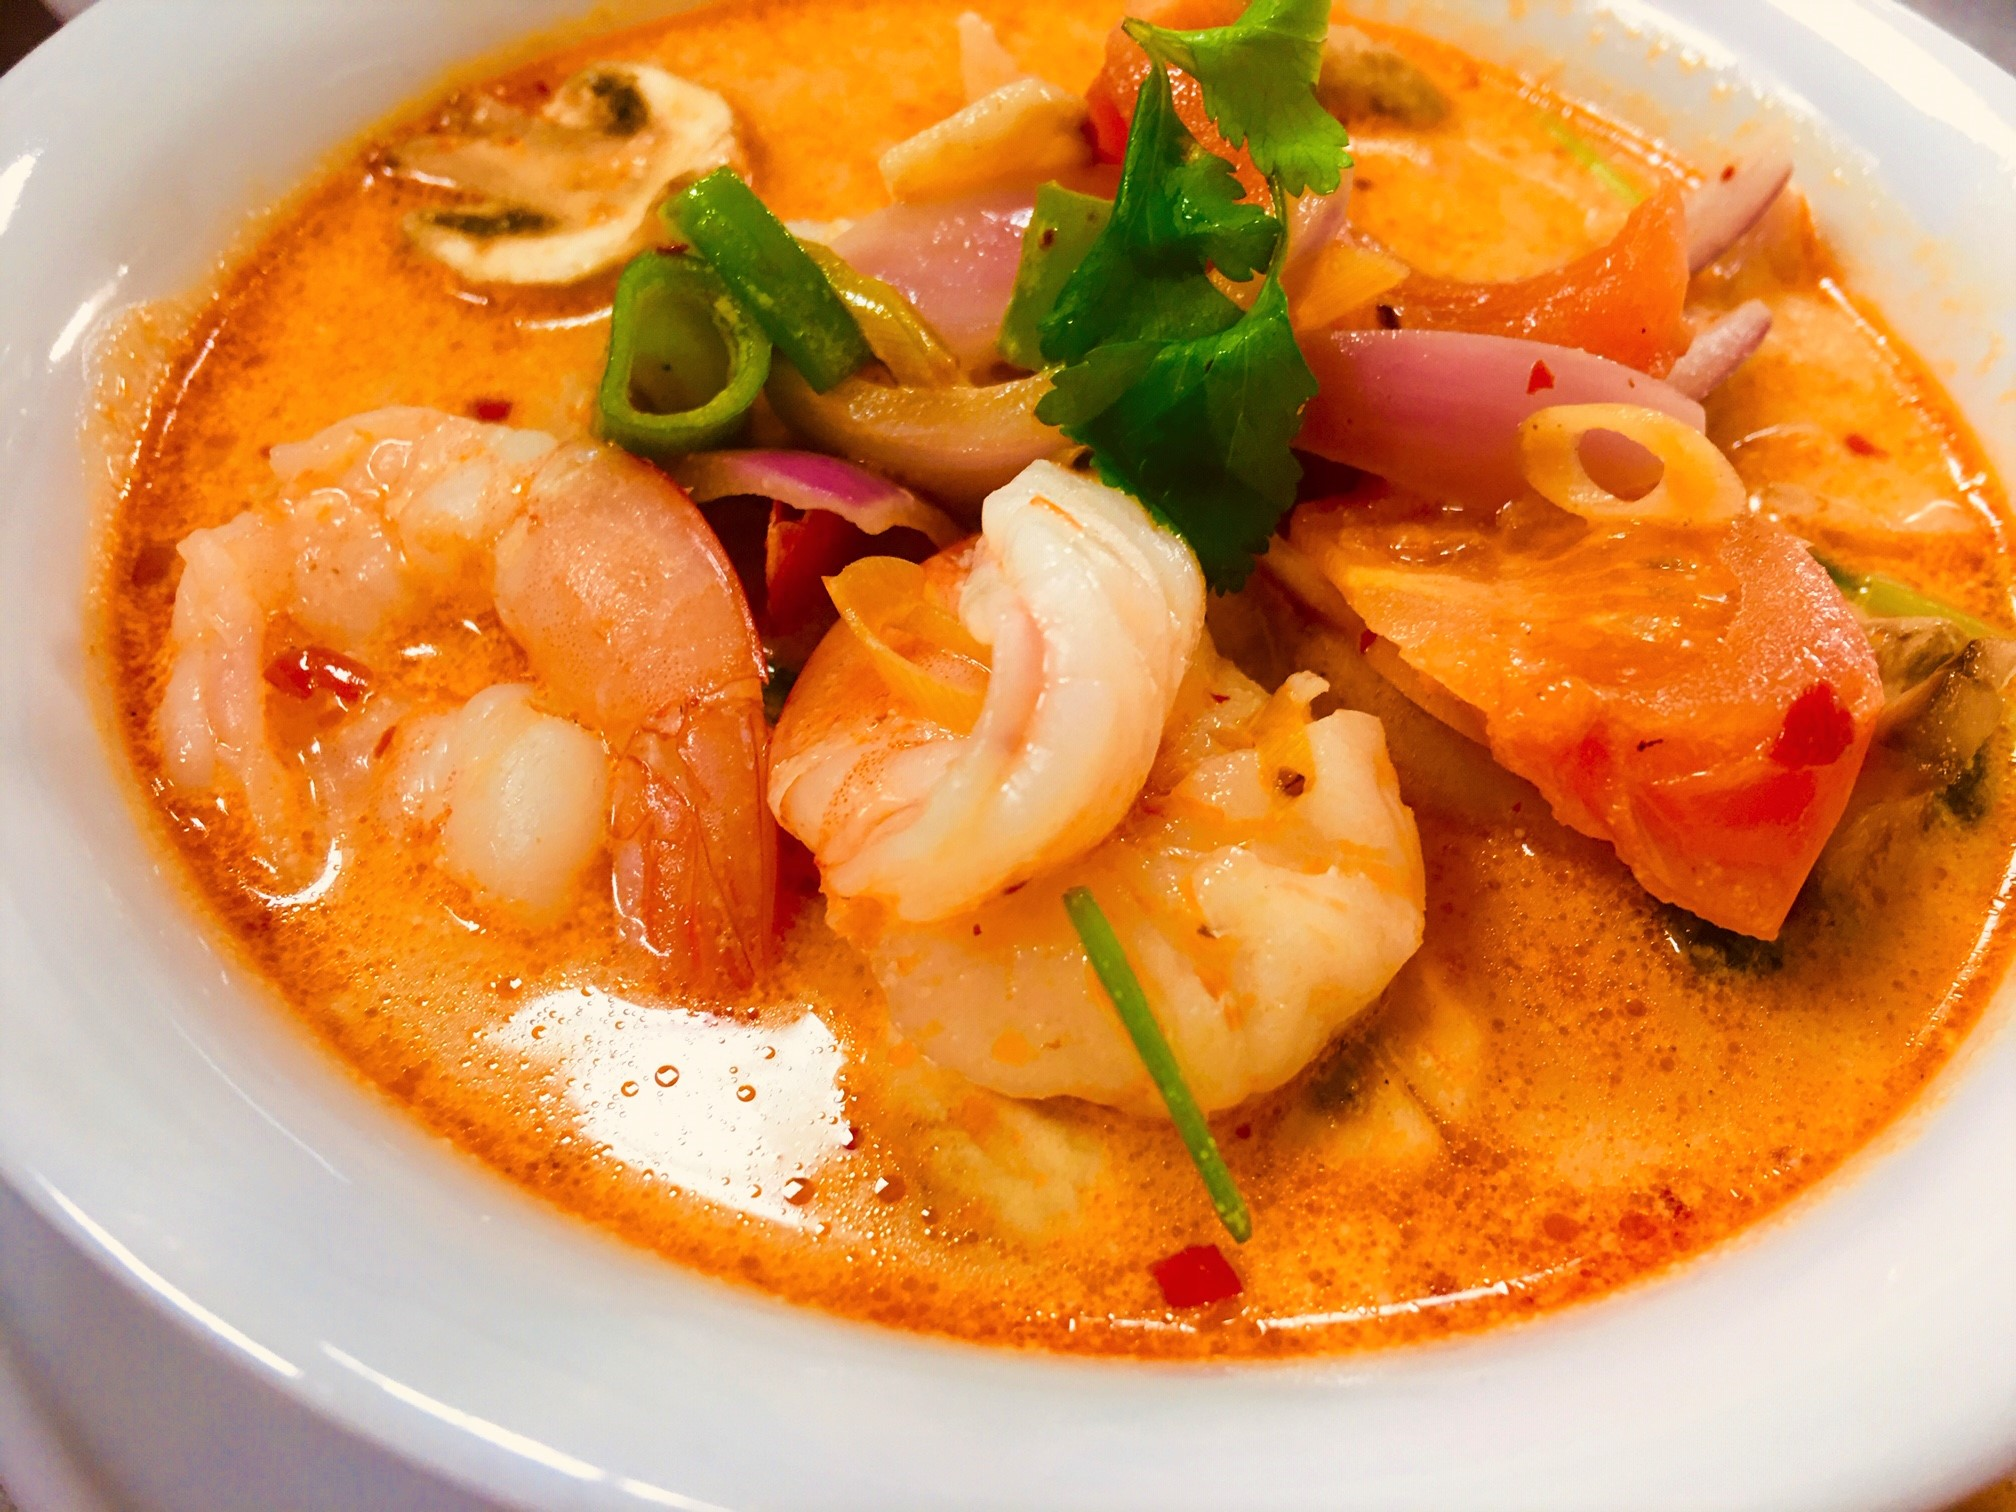 M1 Tom Yum Creamy Soup